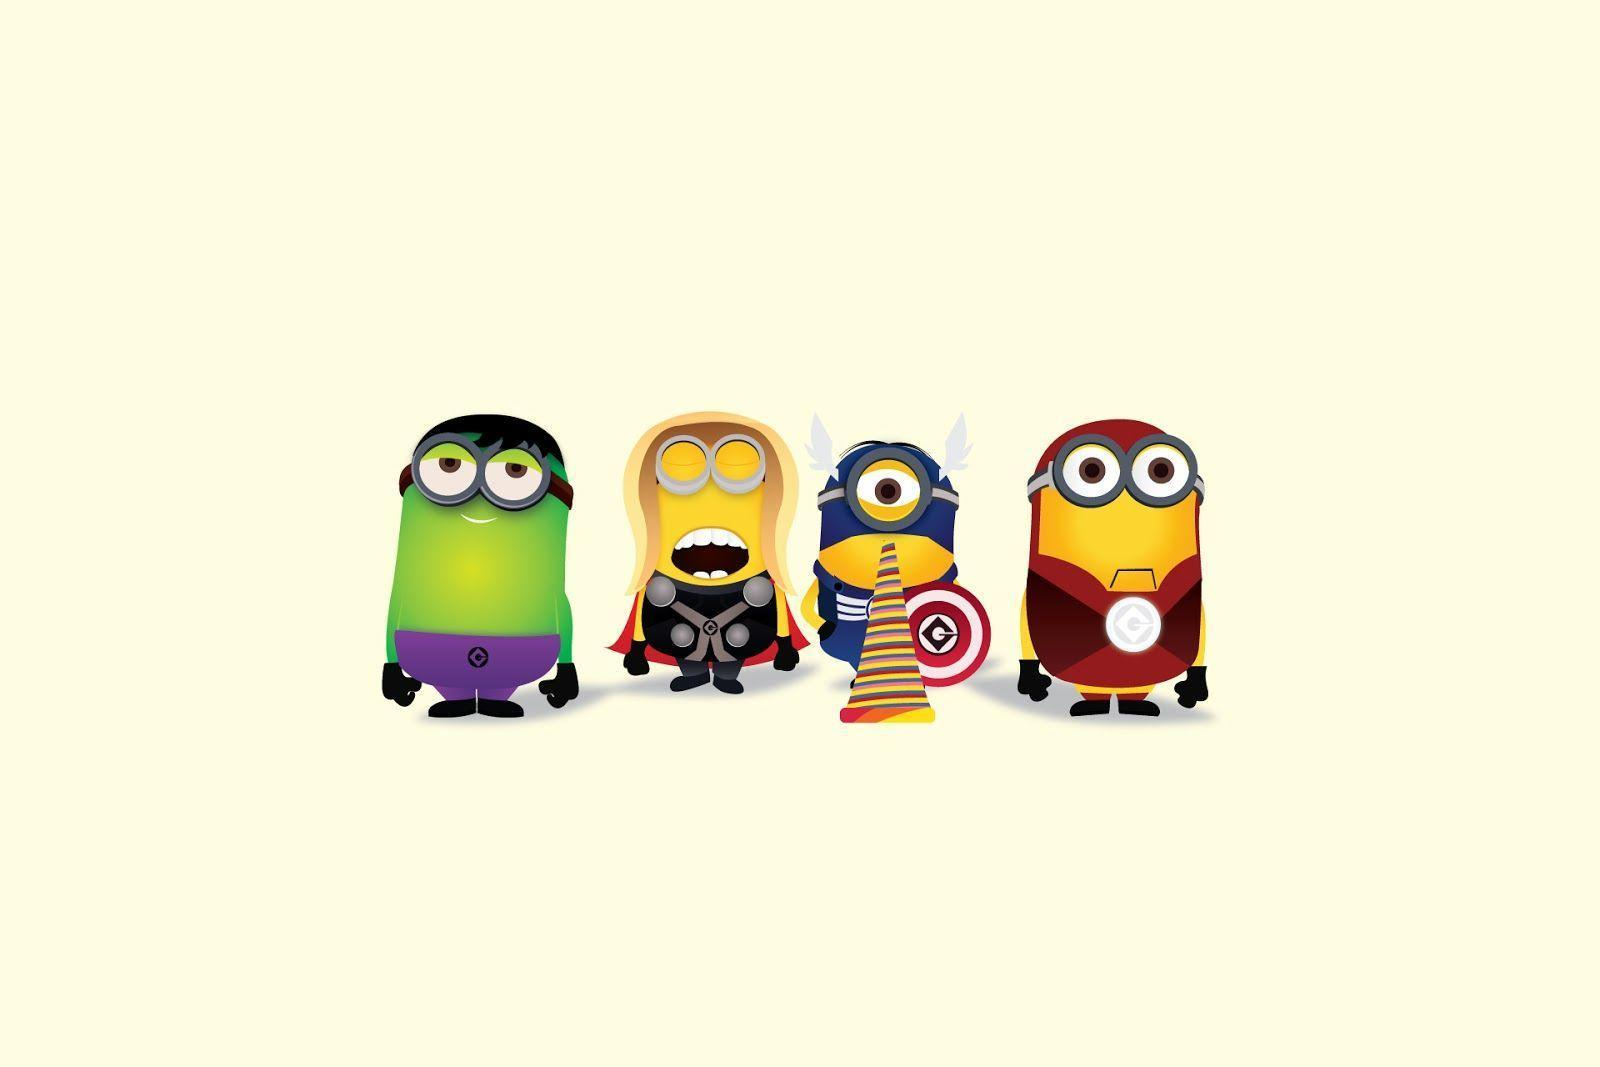 Minion Avengers Wallpapers Top Free Minion Avengers Backgrounds Wallpaperaccess